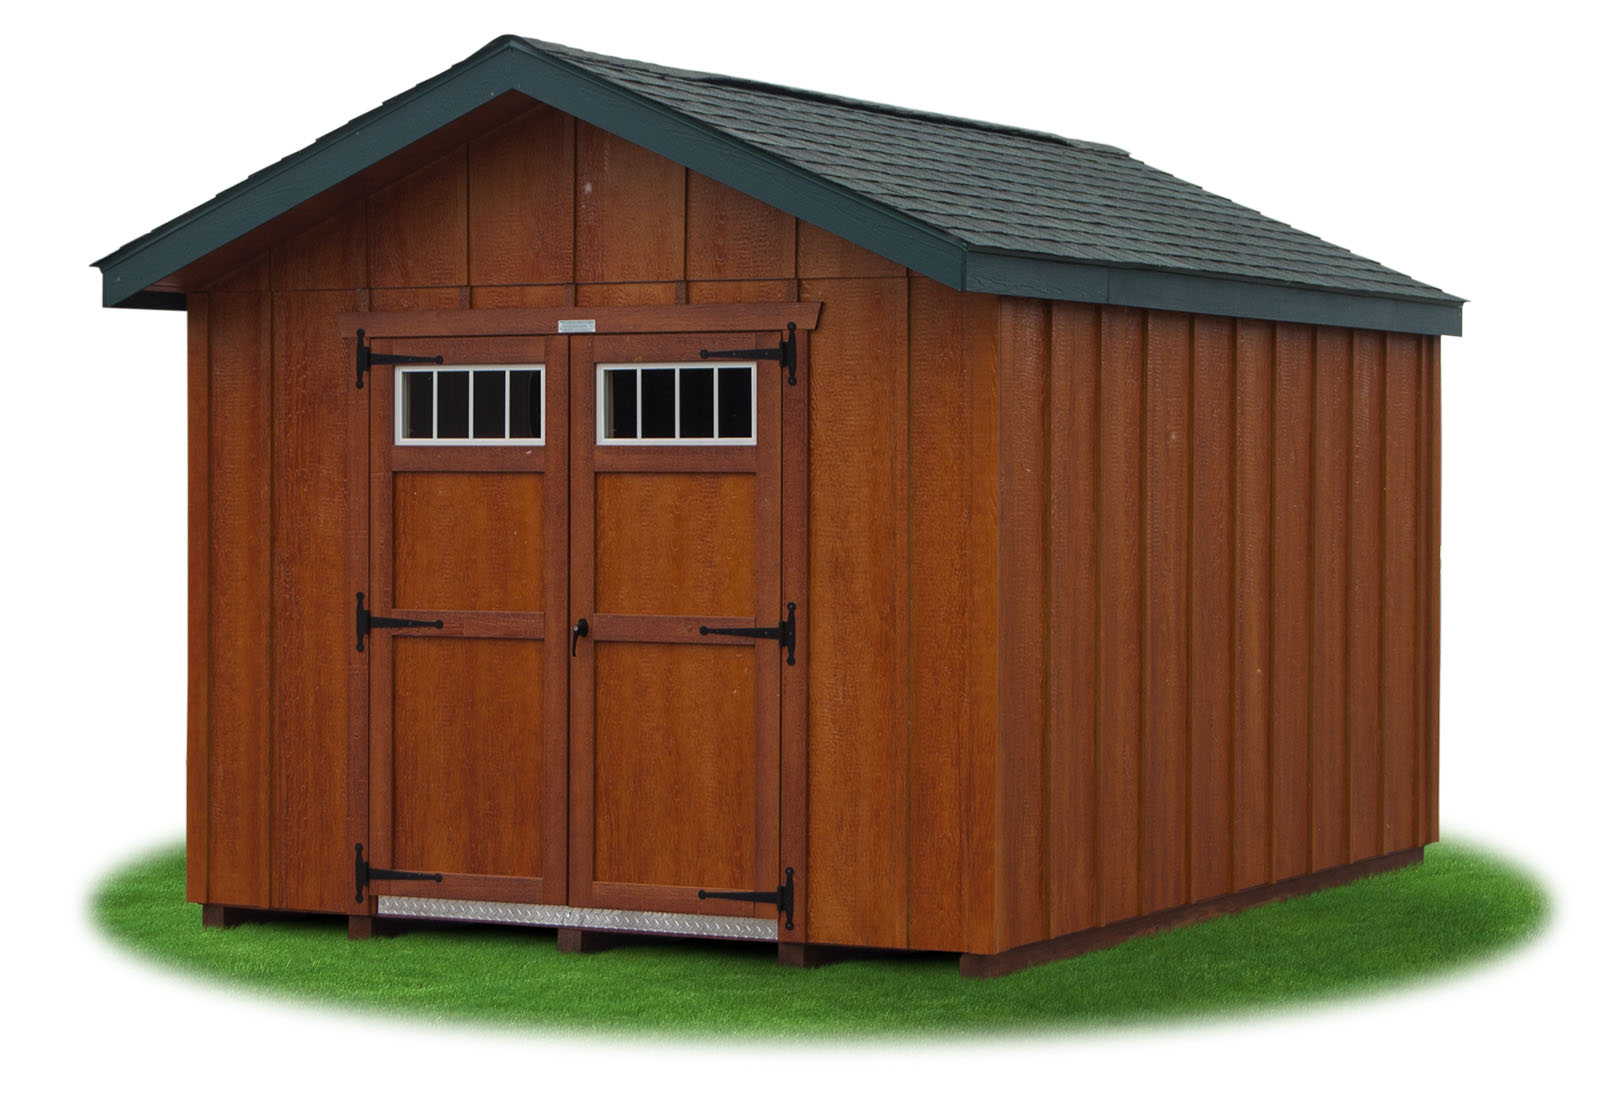 quality project garage excel sheds gallery siding cashmere img x trims with dark drift and driftwood shingles shed